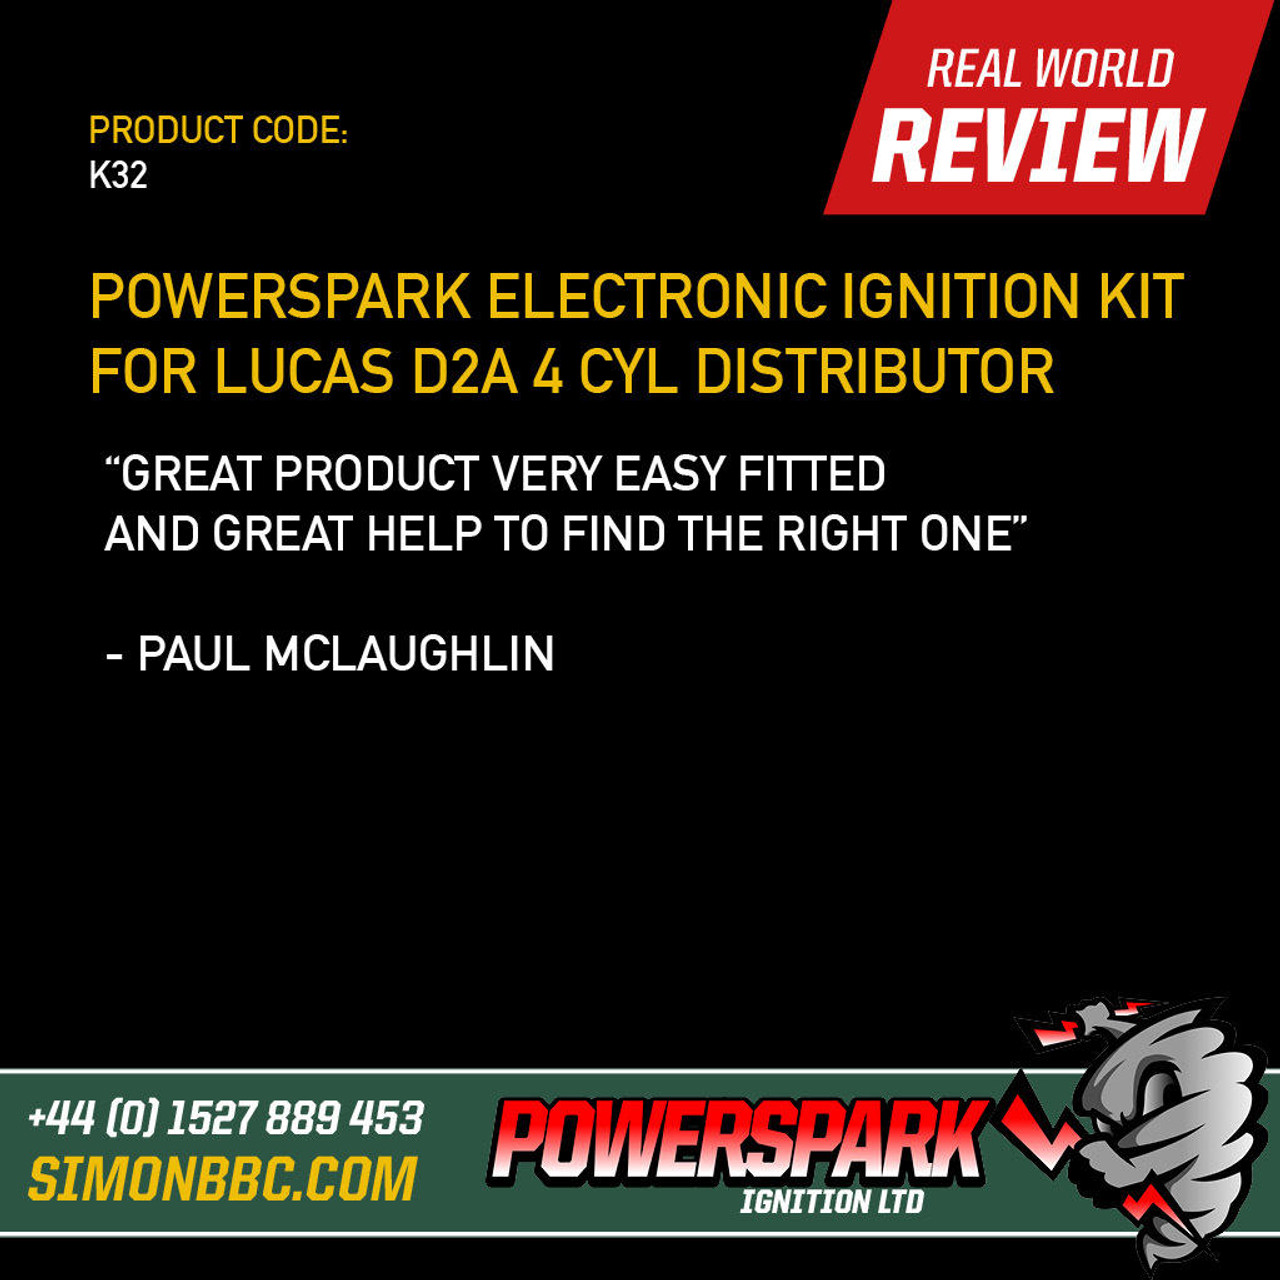 Powerspark Powerspark Electronic Ignition Kit for Lucas D2A Distributor K32